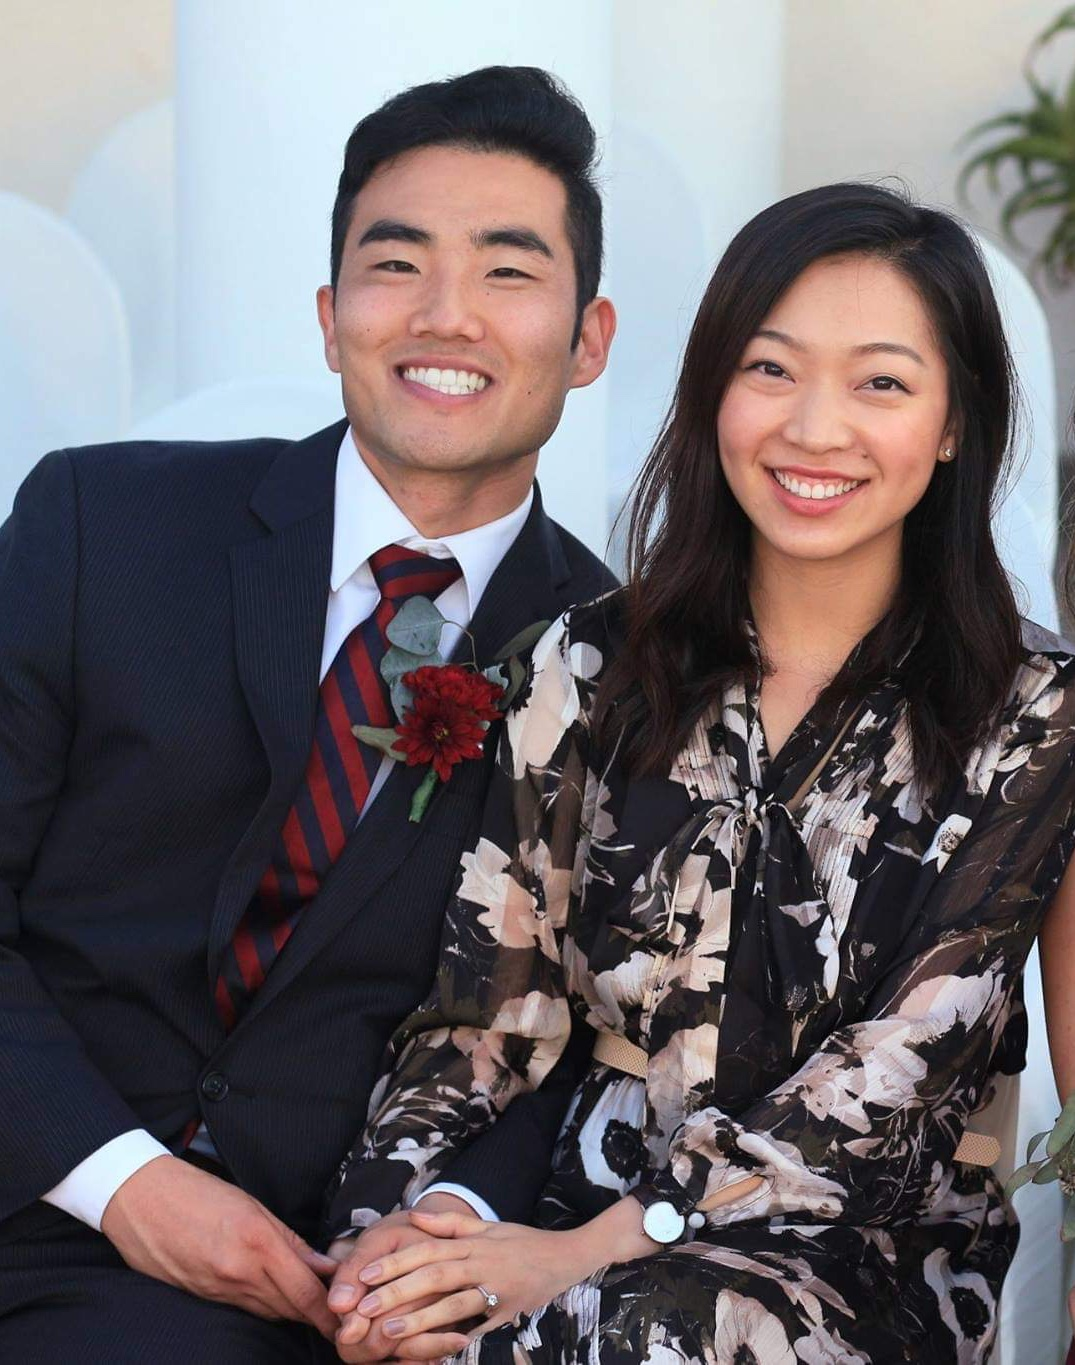 Brian Hwang | Youth Pastor, Emmanuel Presbyterian Church